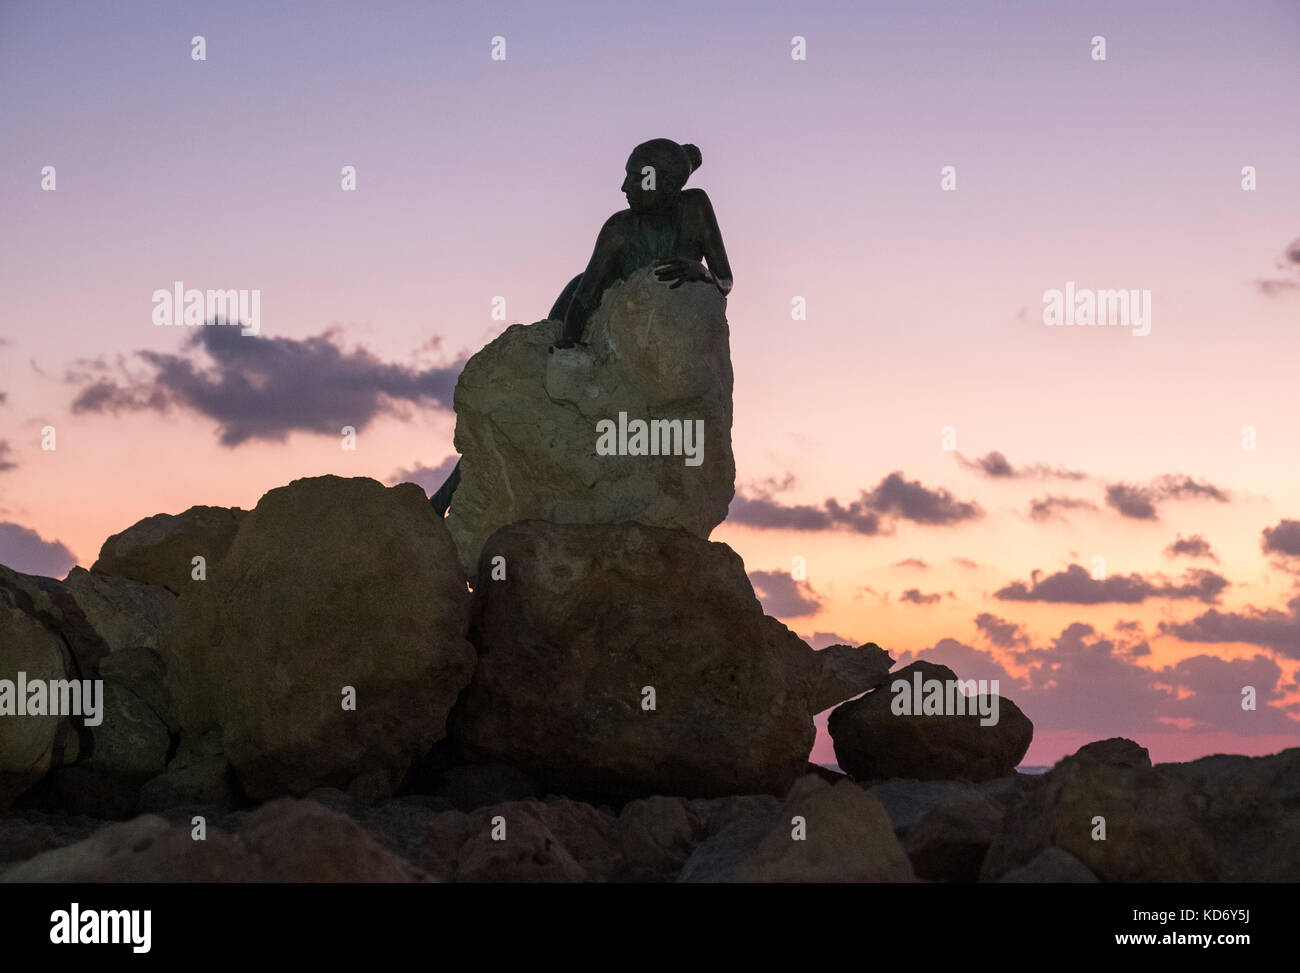 """Sol Alter"" by Yiota Ioannidou, this sculpture or statue sits next to the Paphos Coastal path near Paphos Fort, - Stock Image"